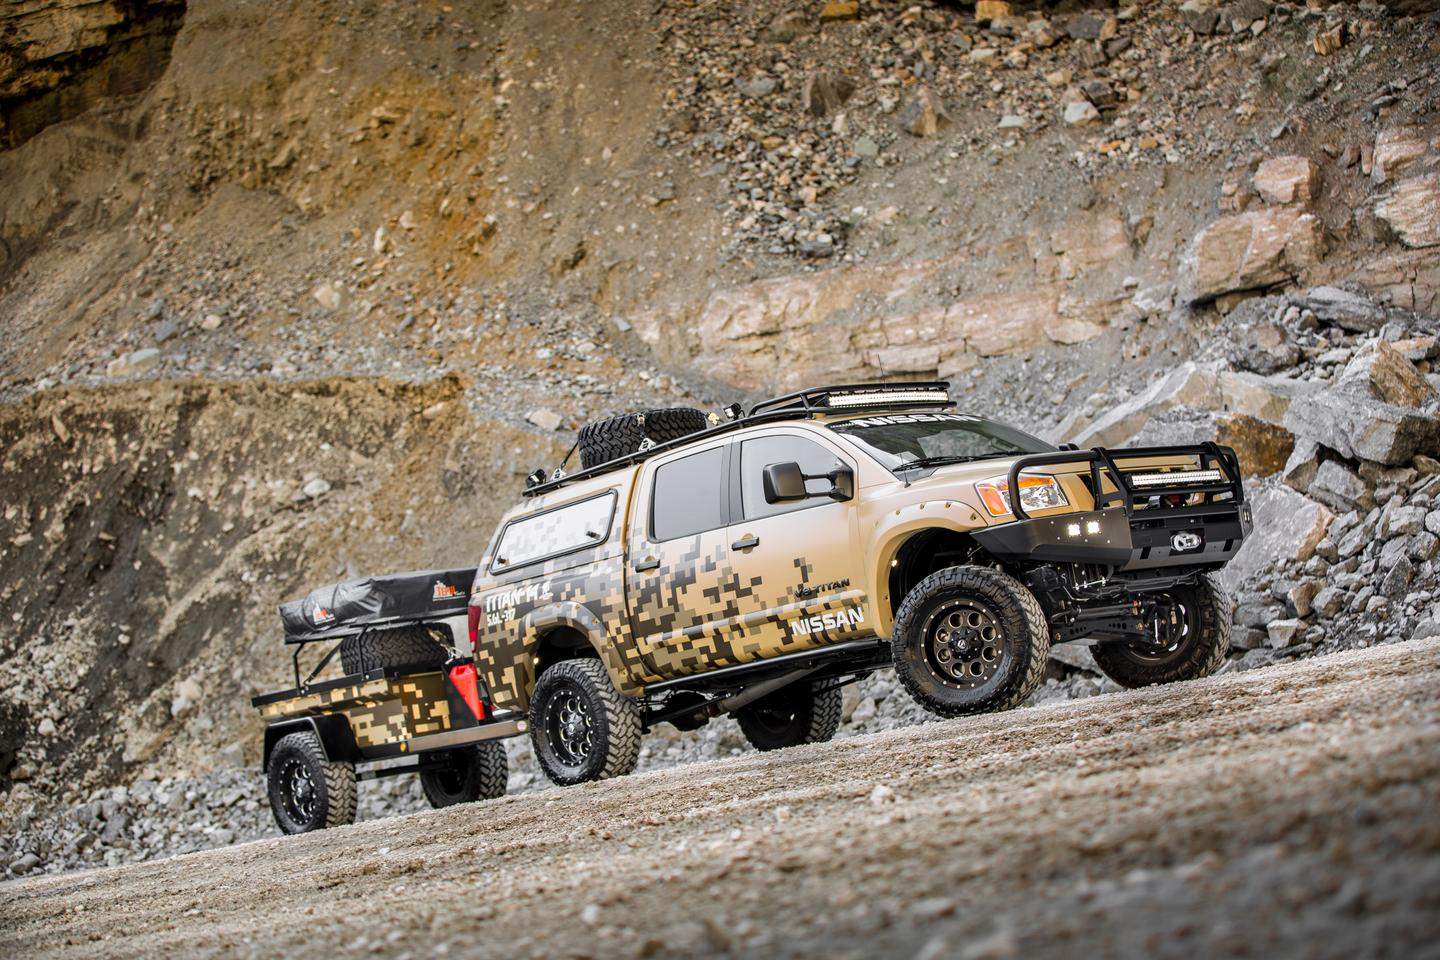 The Nissan Project Titan is ready for a multi-day journey through Alaska